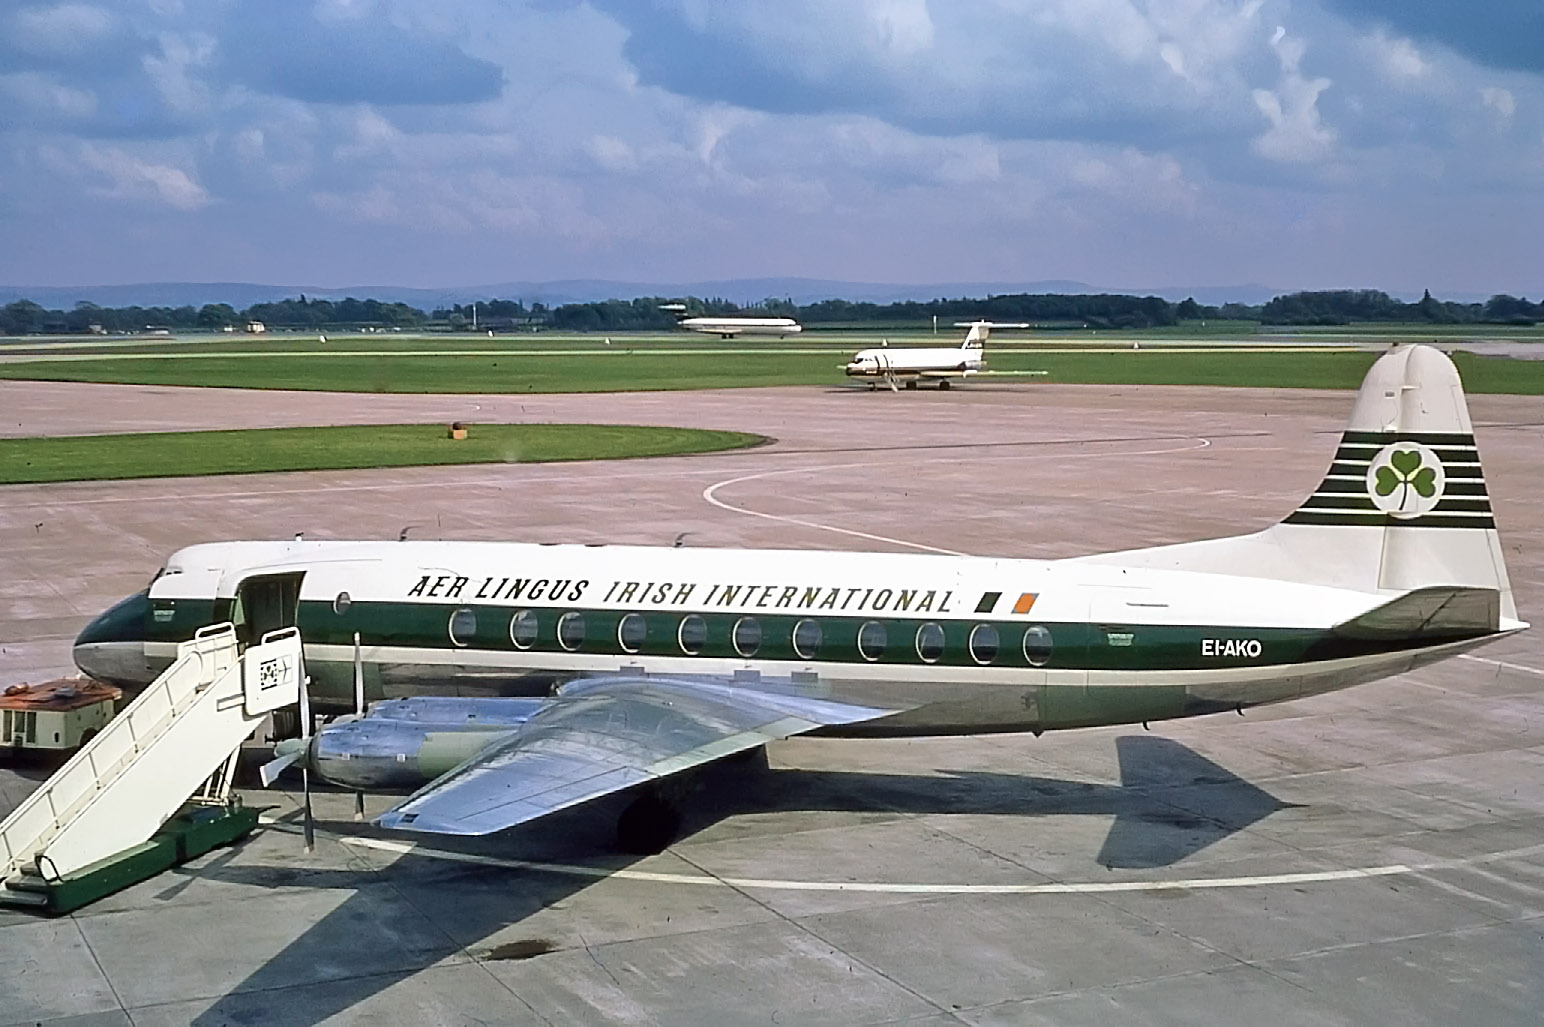 Aer Lingus Viscount EI-AKO looks good on Pier B with a Laker BAC 1-11 in the South Bay and new BEA Super 1-11 division aircraft just to the rear on Runway 24. Bob Thorpe May 1969.